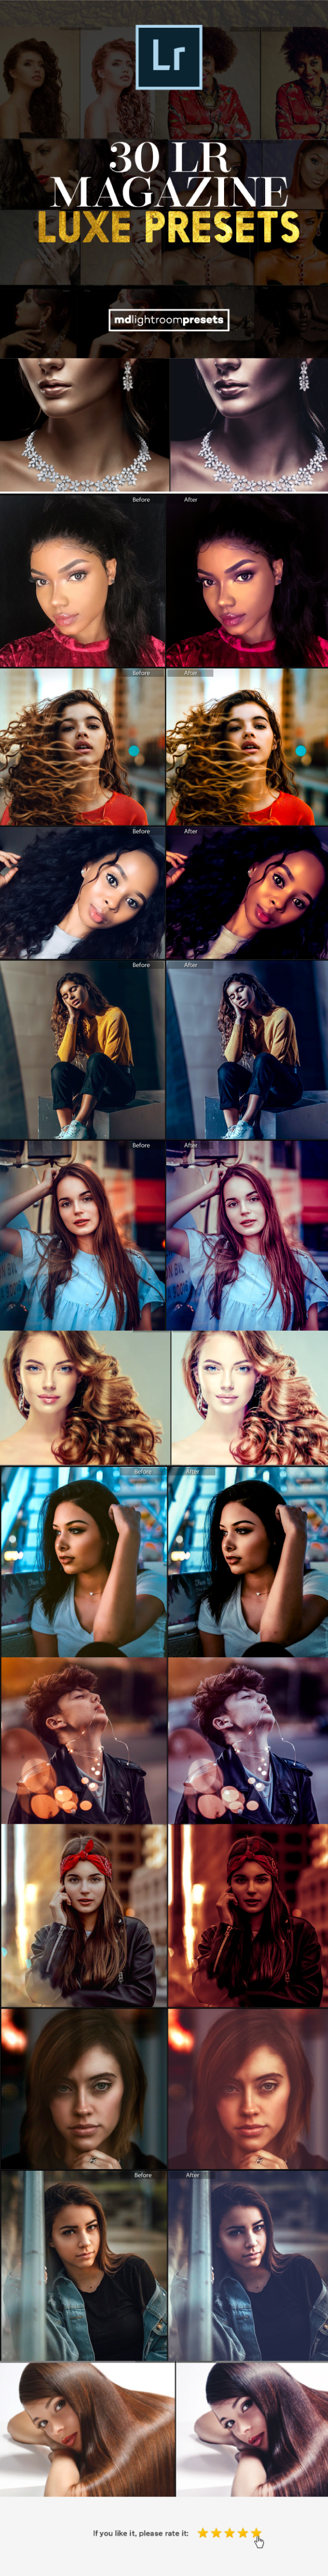 30 Luxe Fashion Magazine Lightroom Presets - Portrait Lightroom Presets